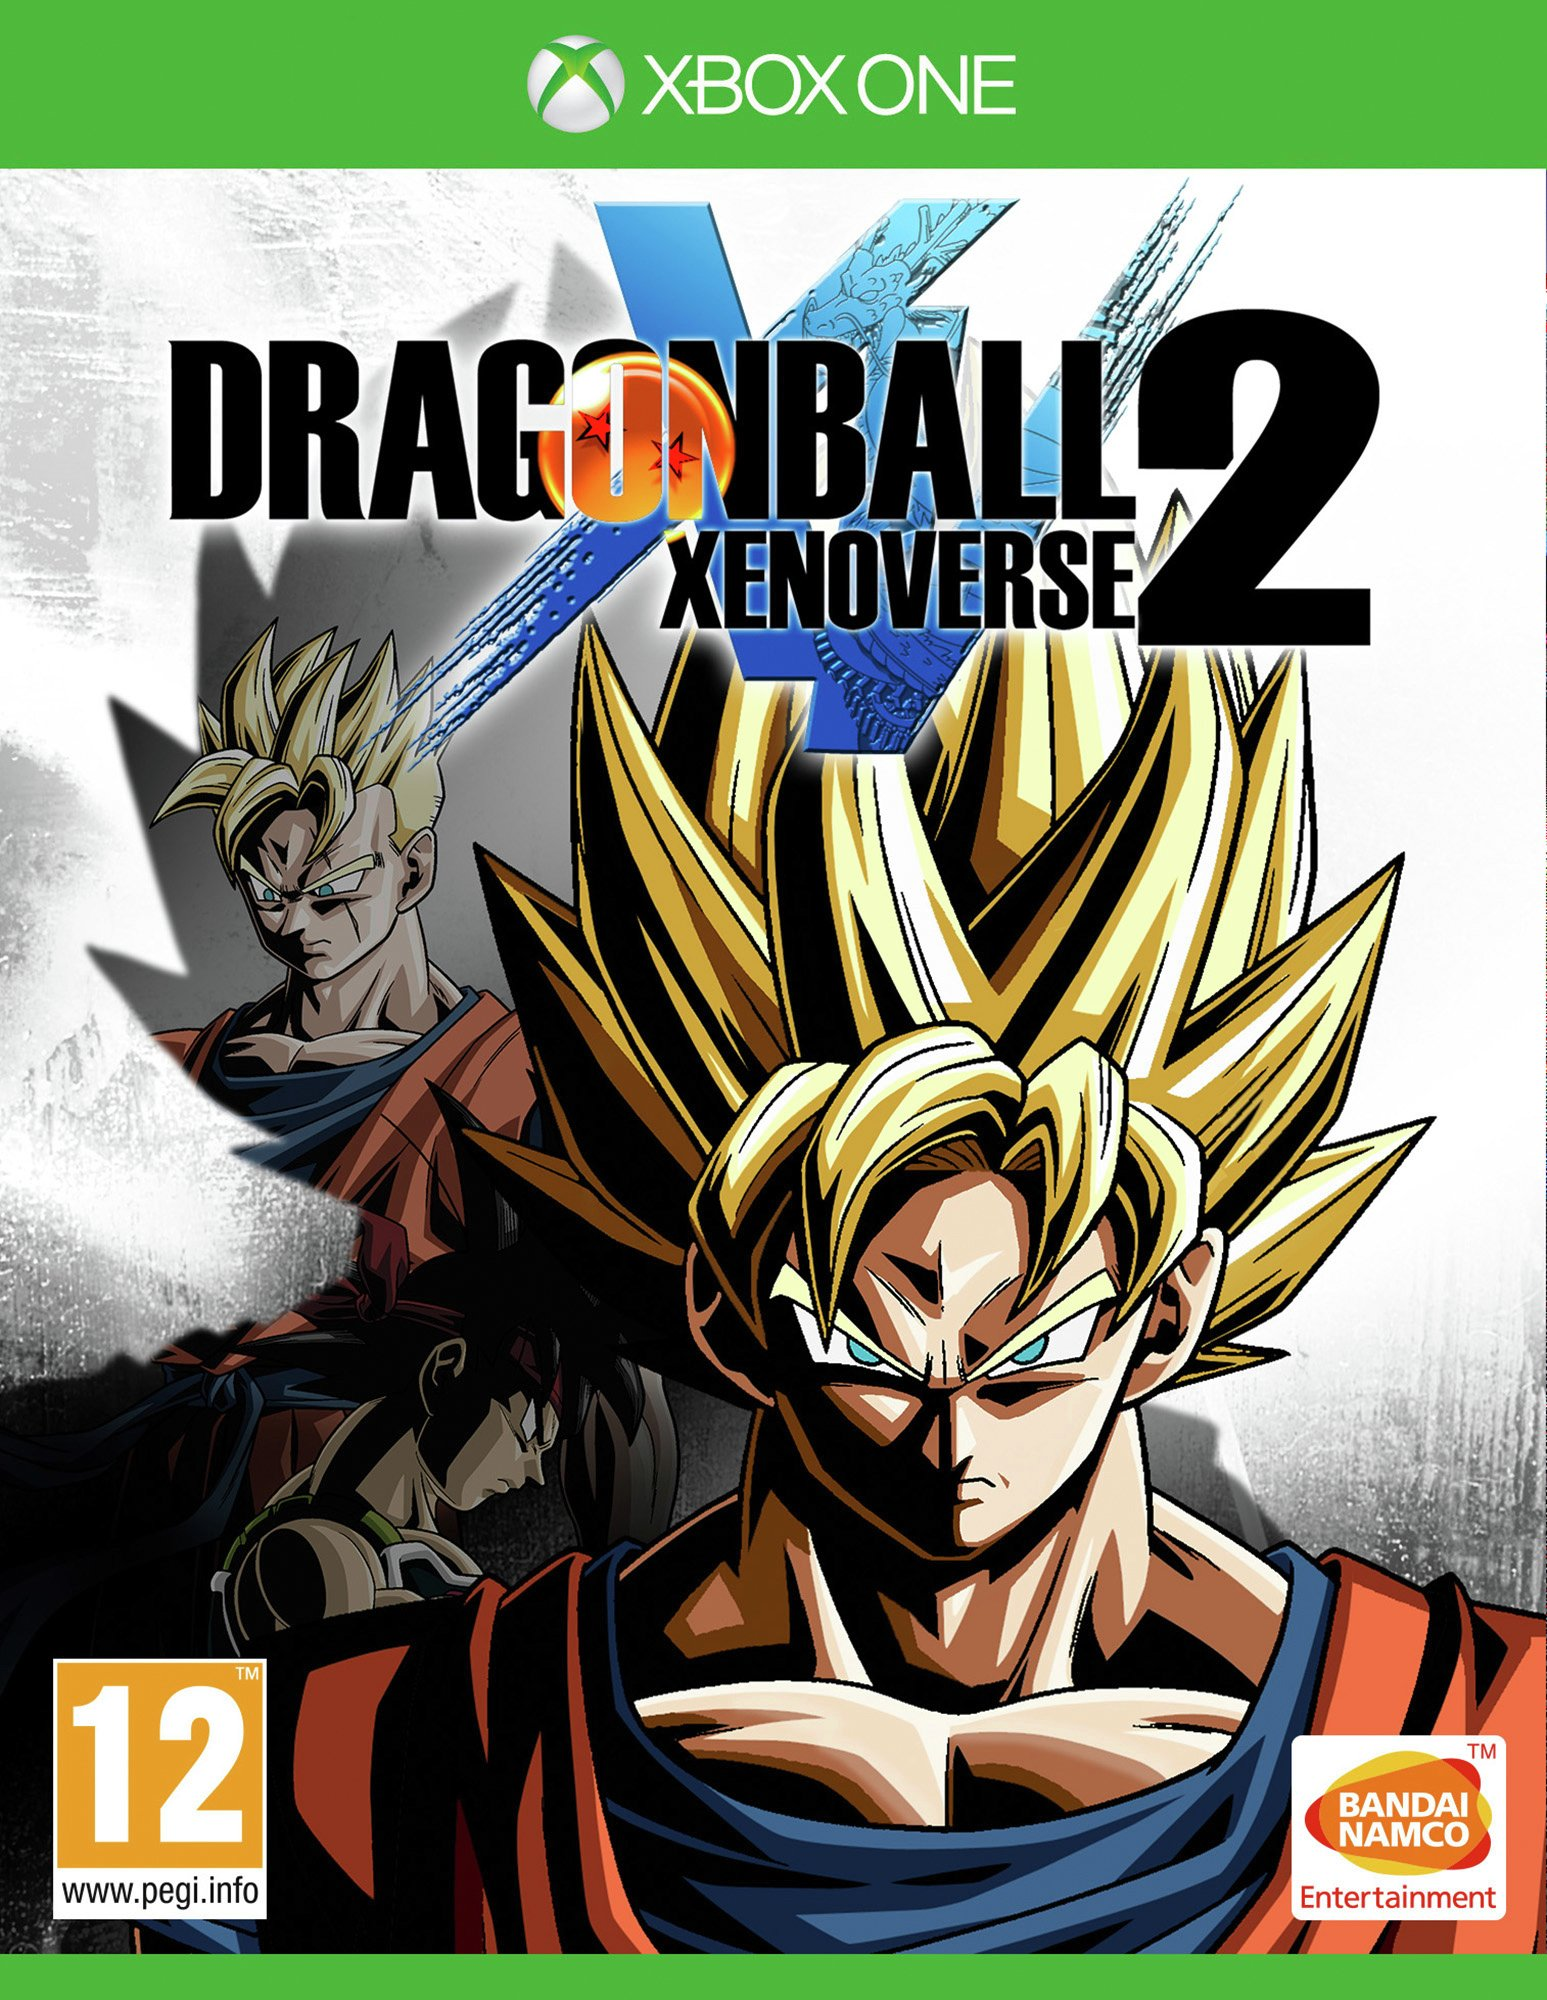 Dragonball Xenoverse 2 Xbox One Game. from Dragon Ball